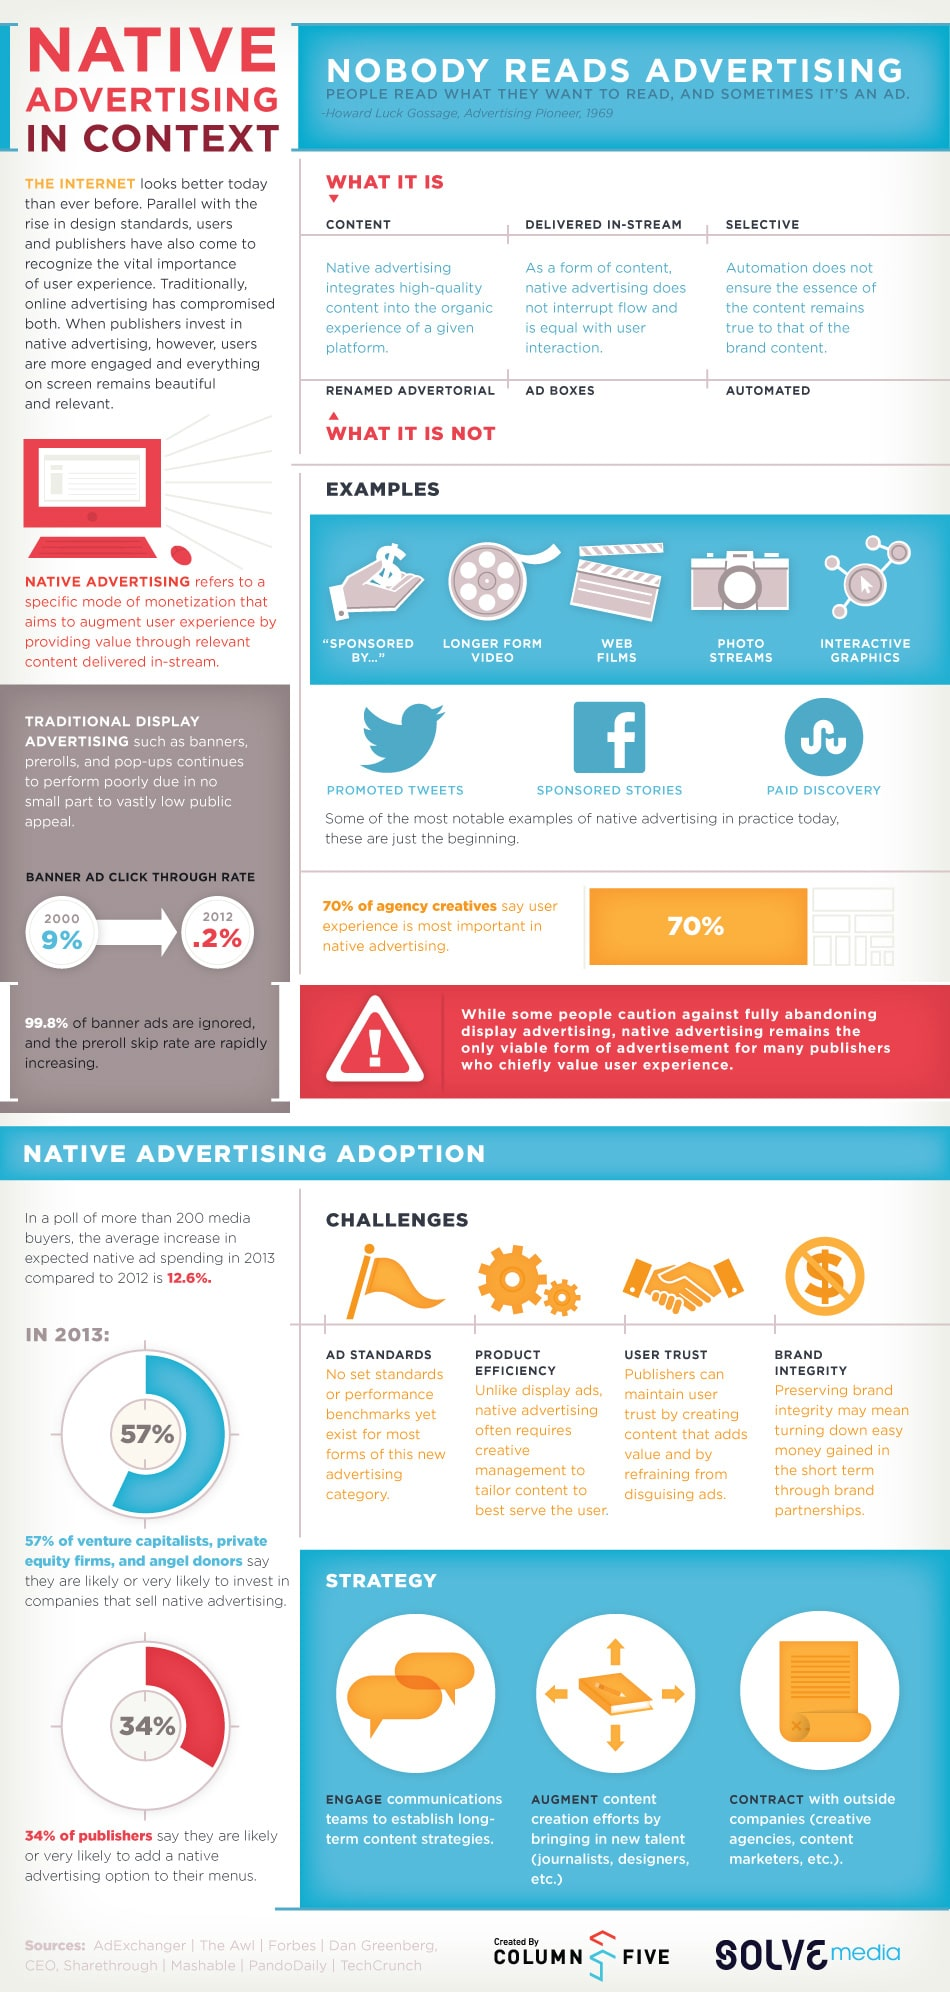 The Small Business Guide To Native Advertising [Infographic]